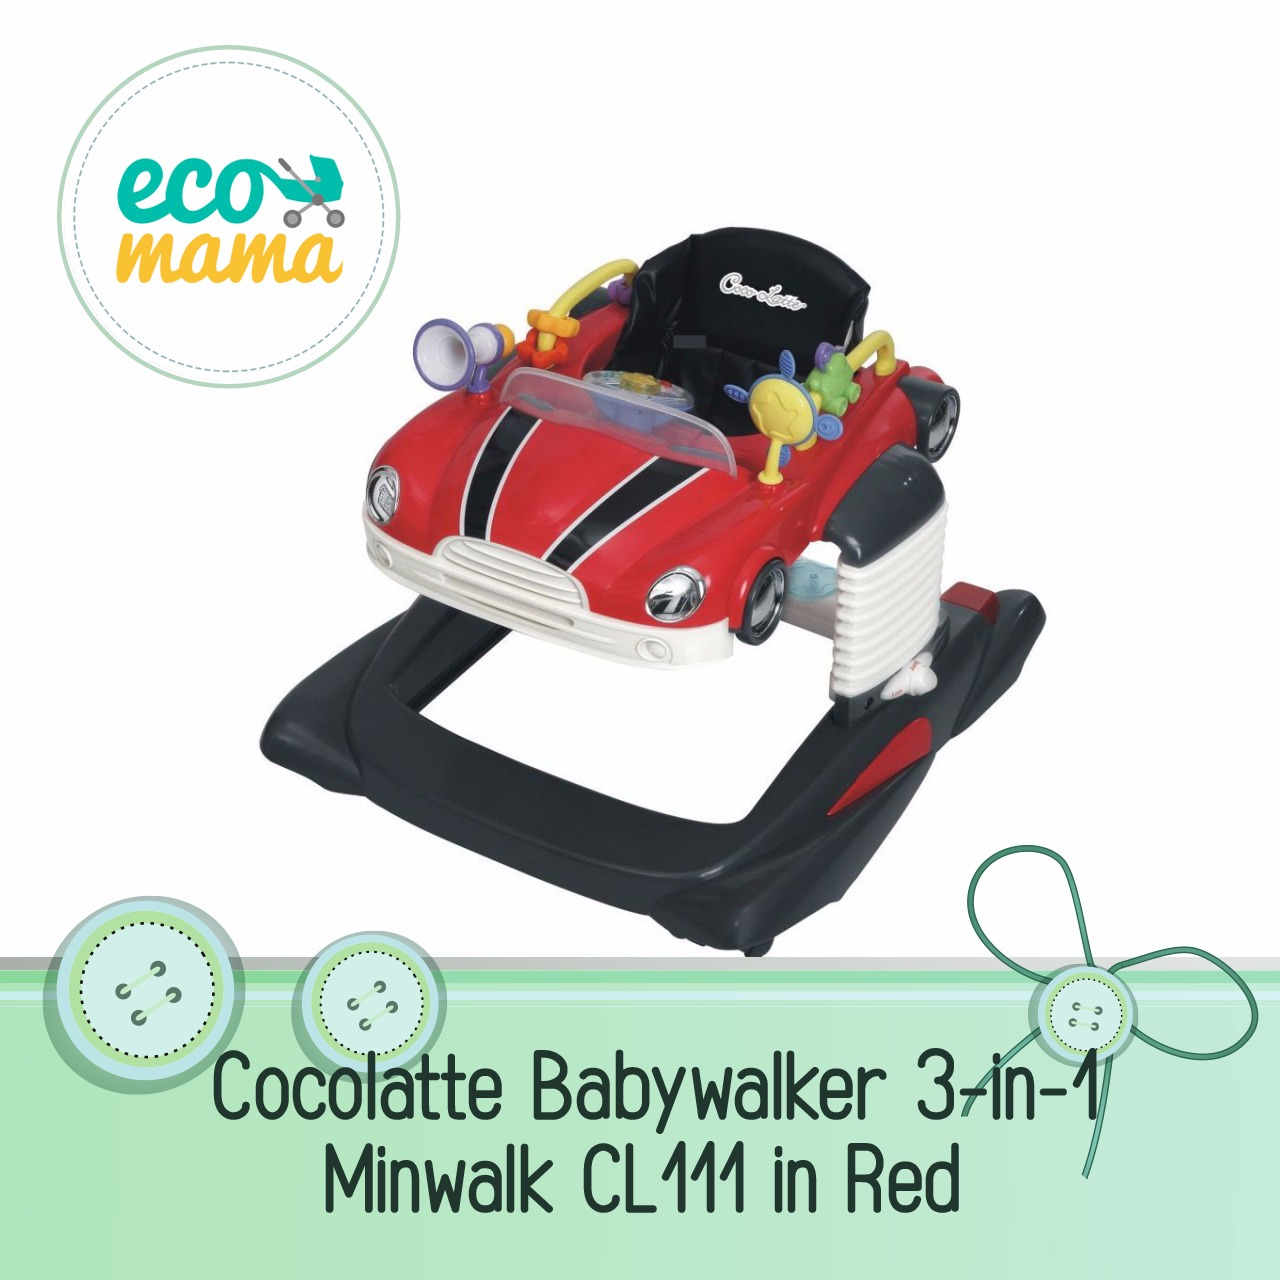 Cocolatte 3in1 Minwalk CL111 Walker in Red